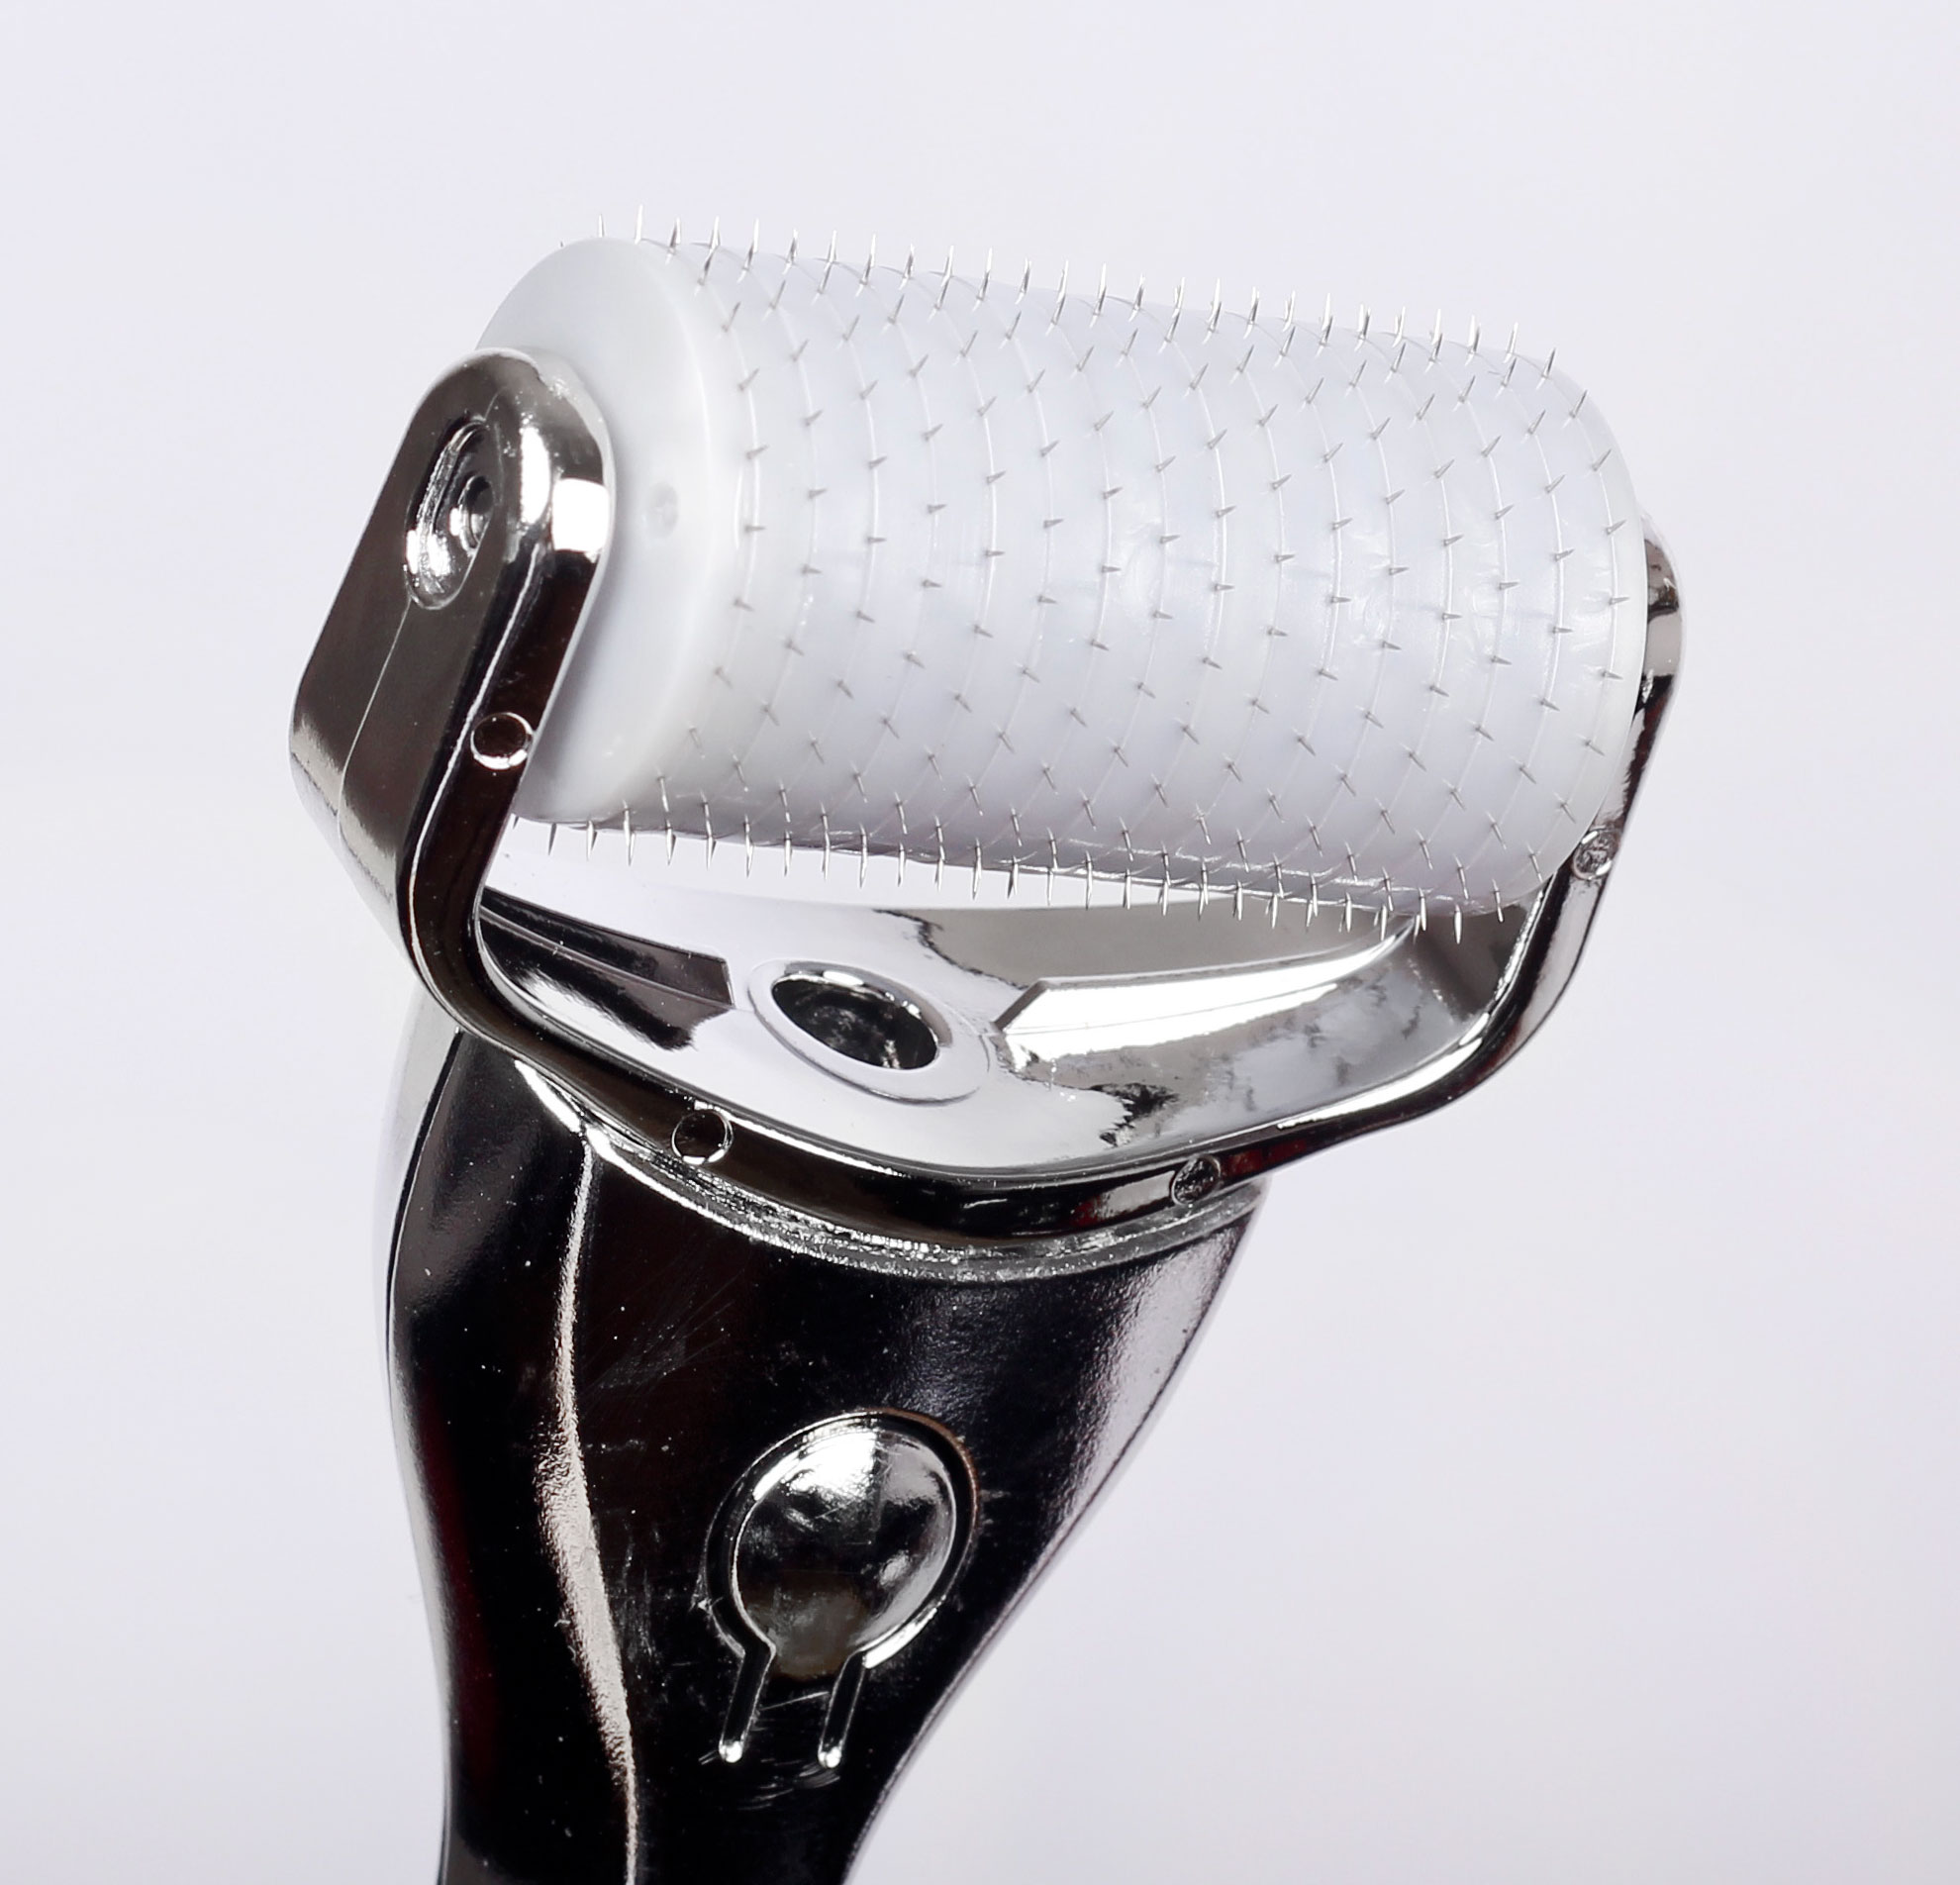 Microneedling - At home with Swiss Body Roller